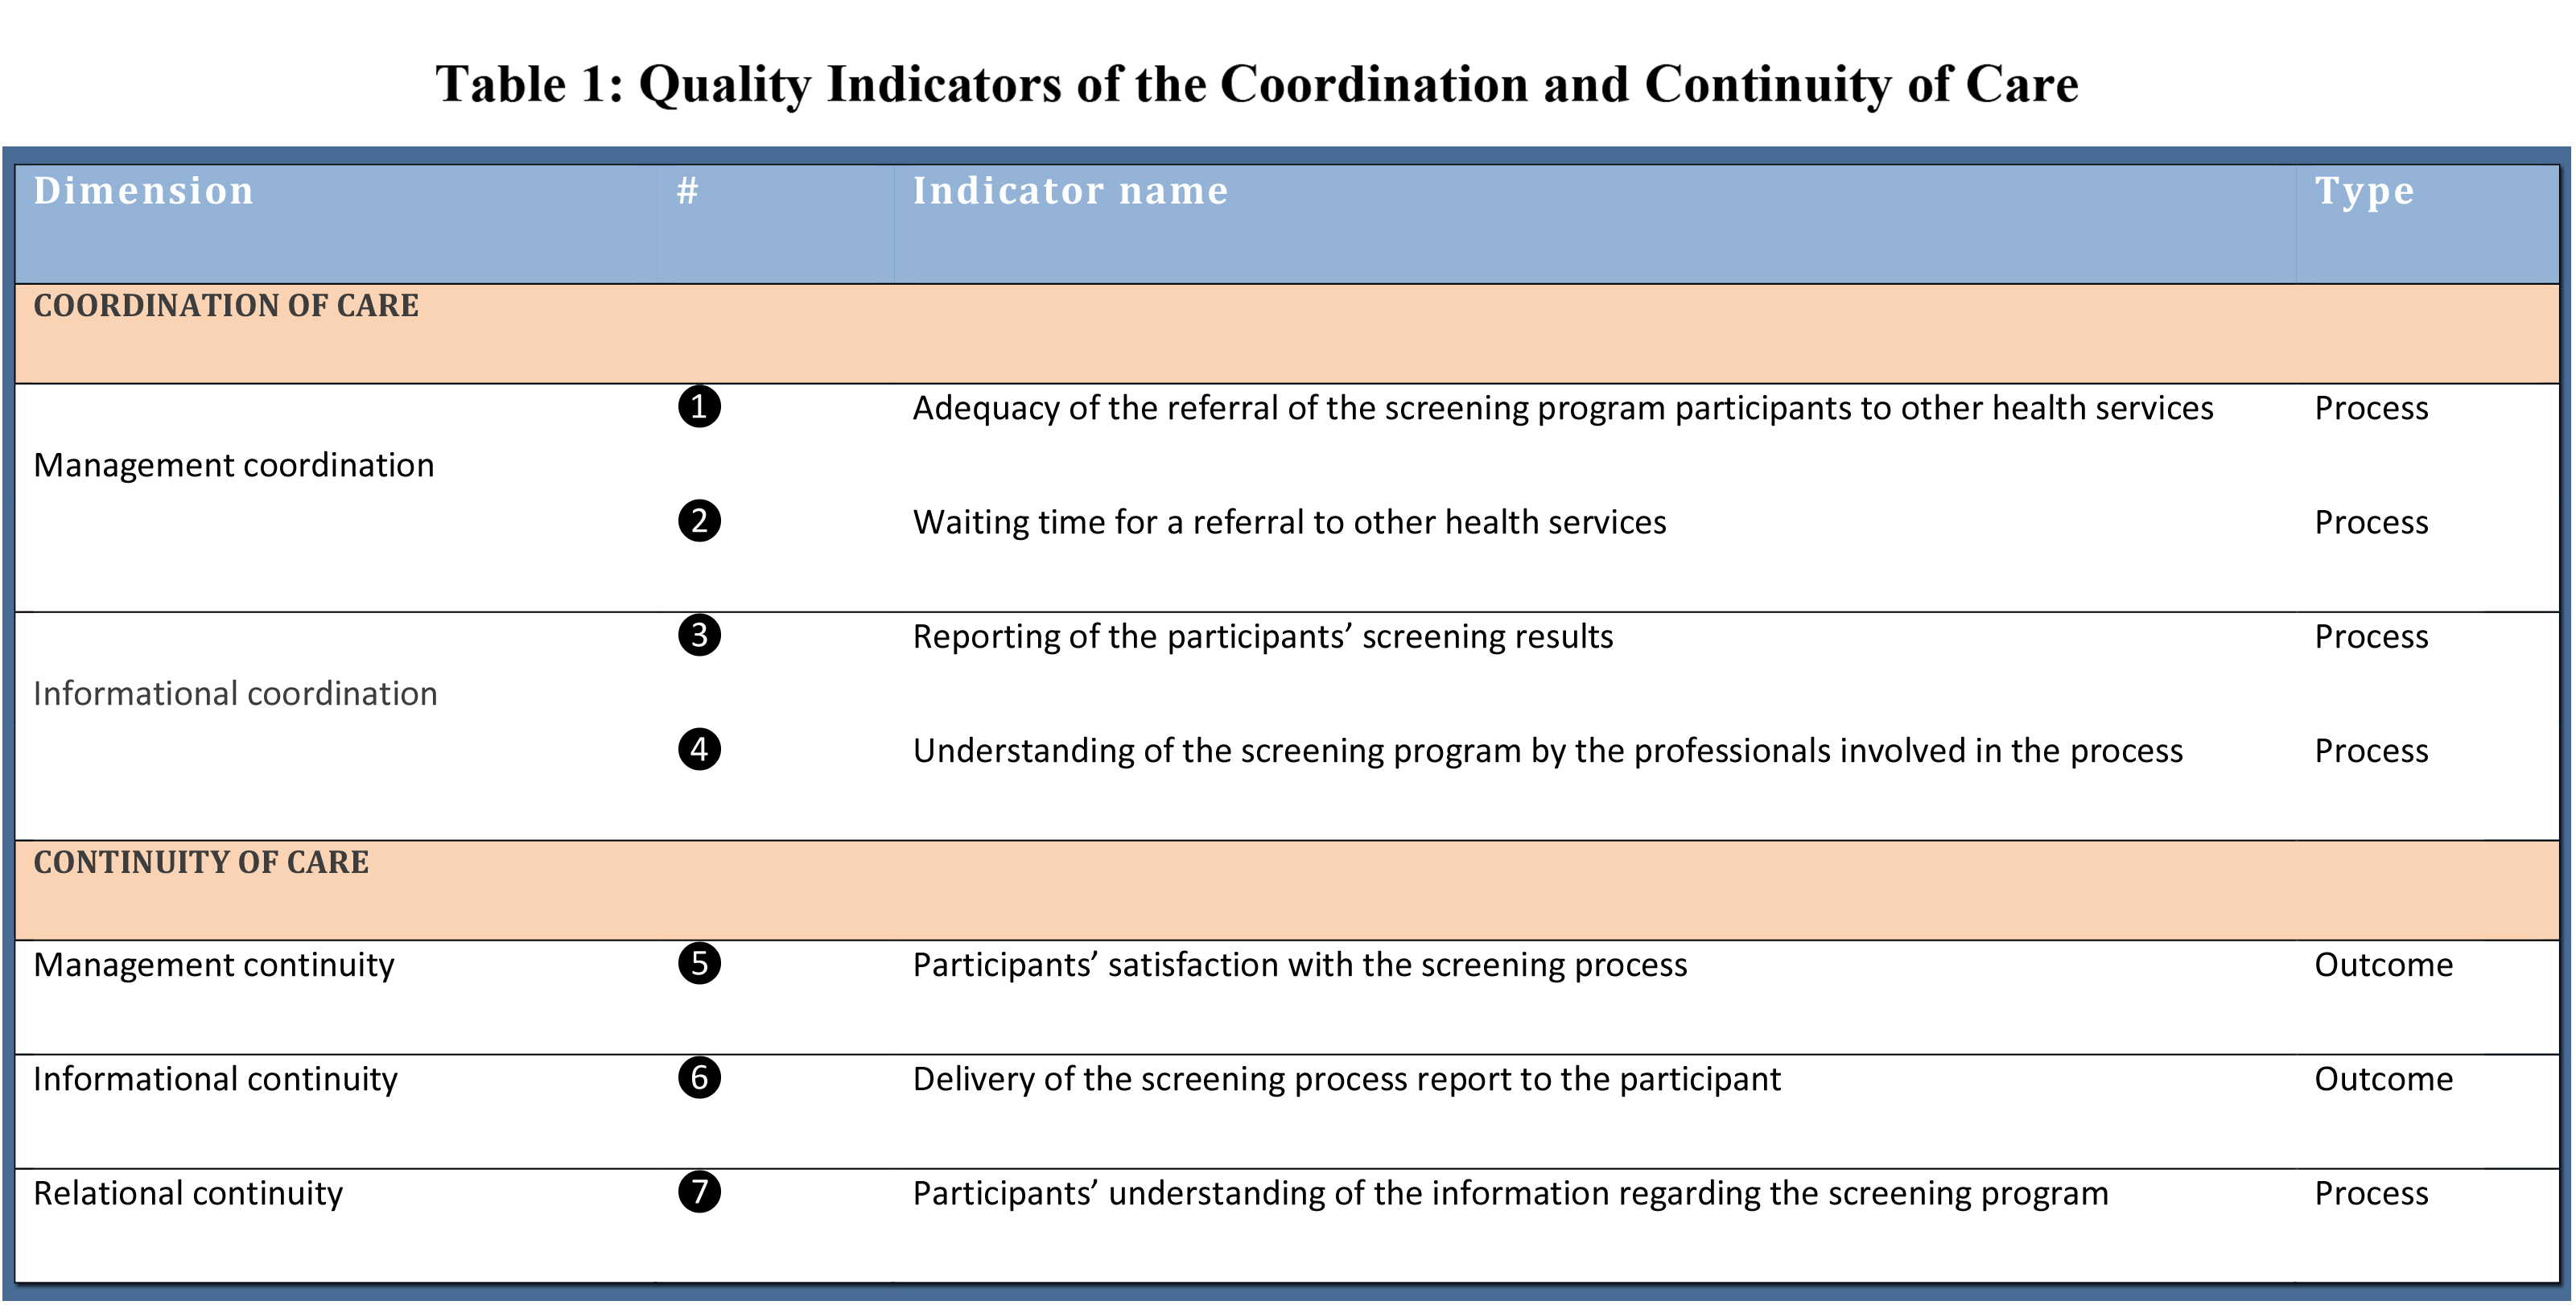 Screening for colorectal cancer: indicators of coordination